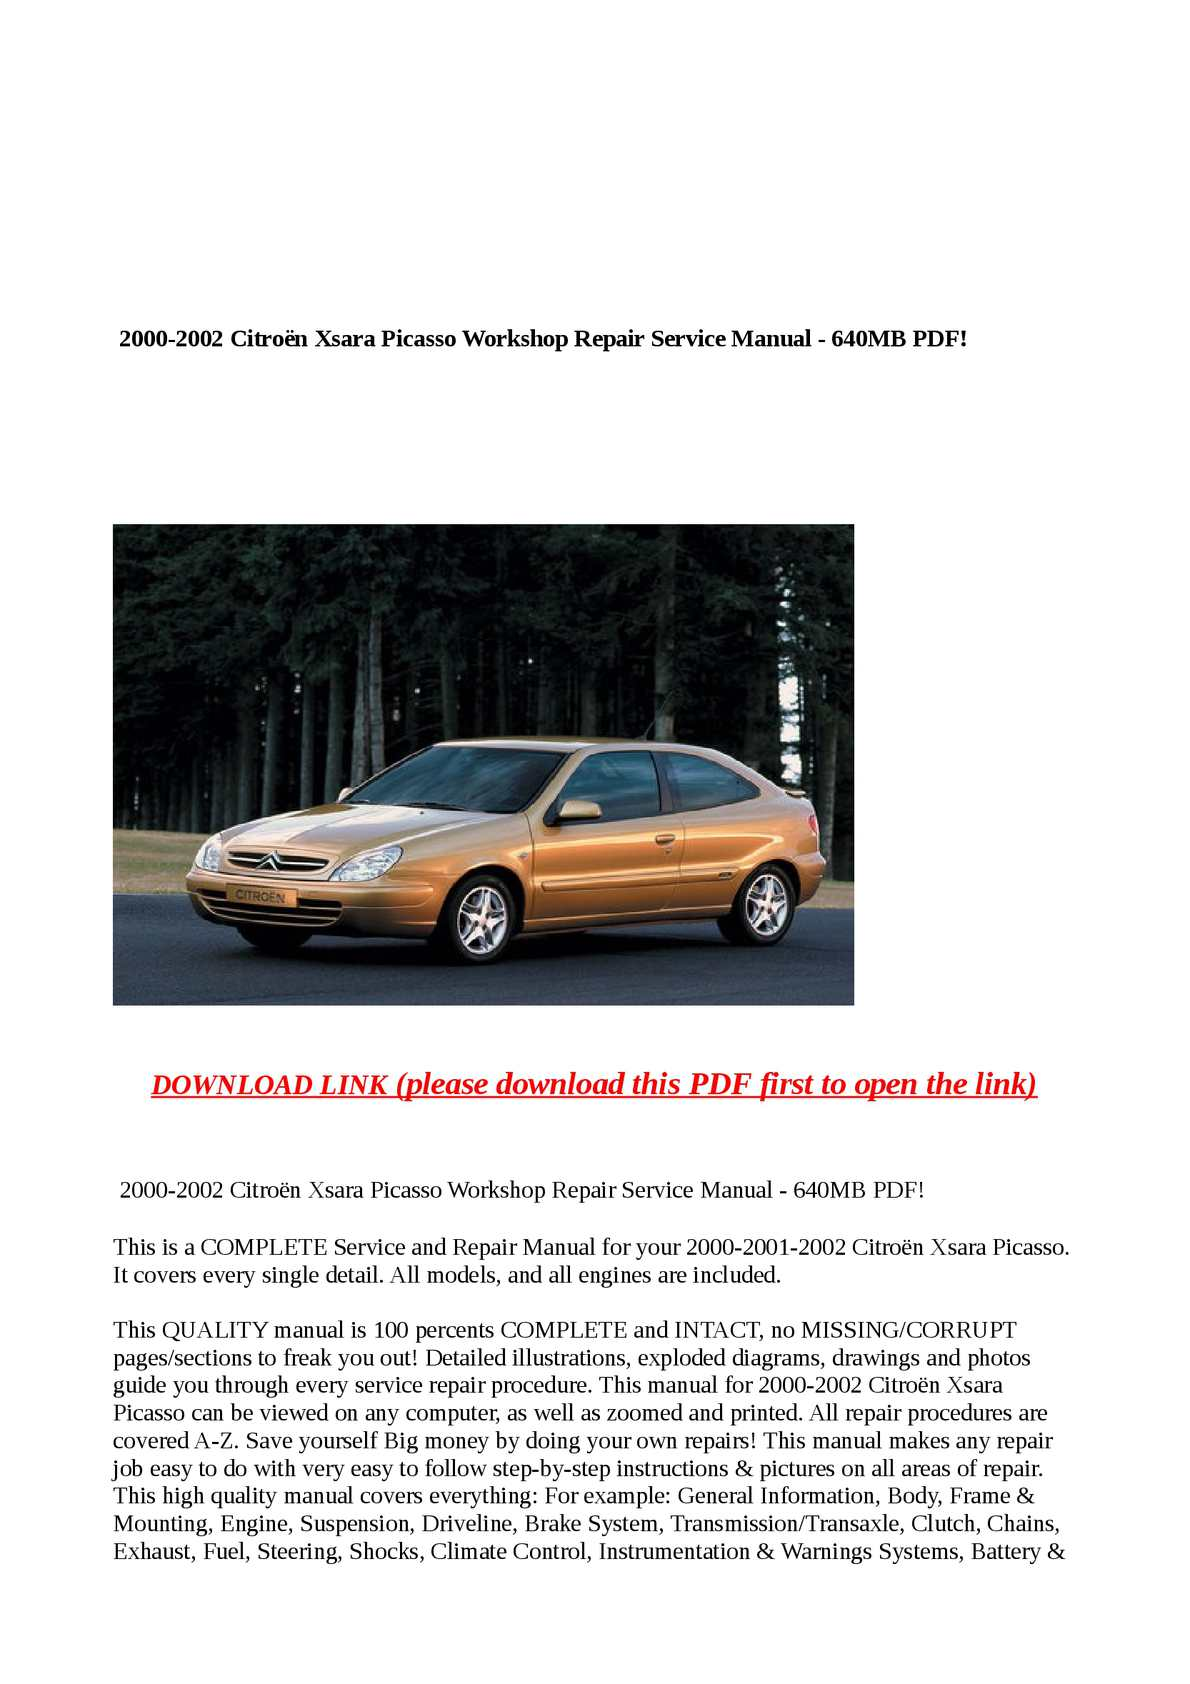 Calaméo - 2000-2002 Citroën Xsara Picasso Workshop Repair Service Manual - 6